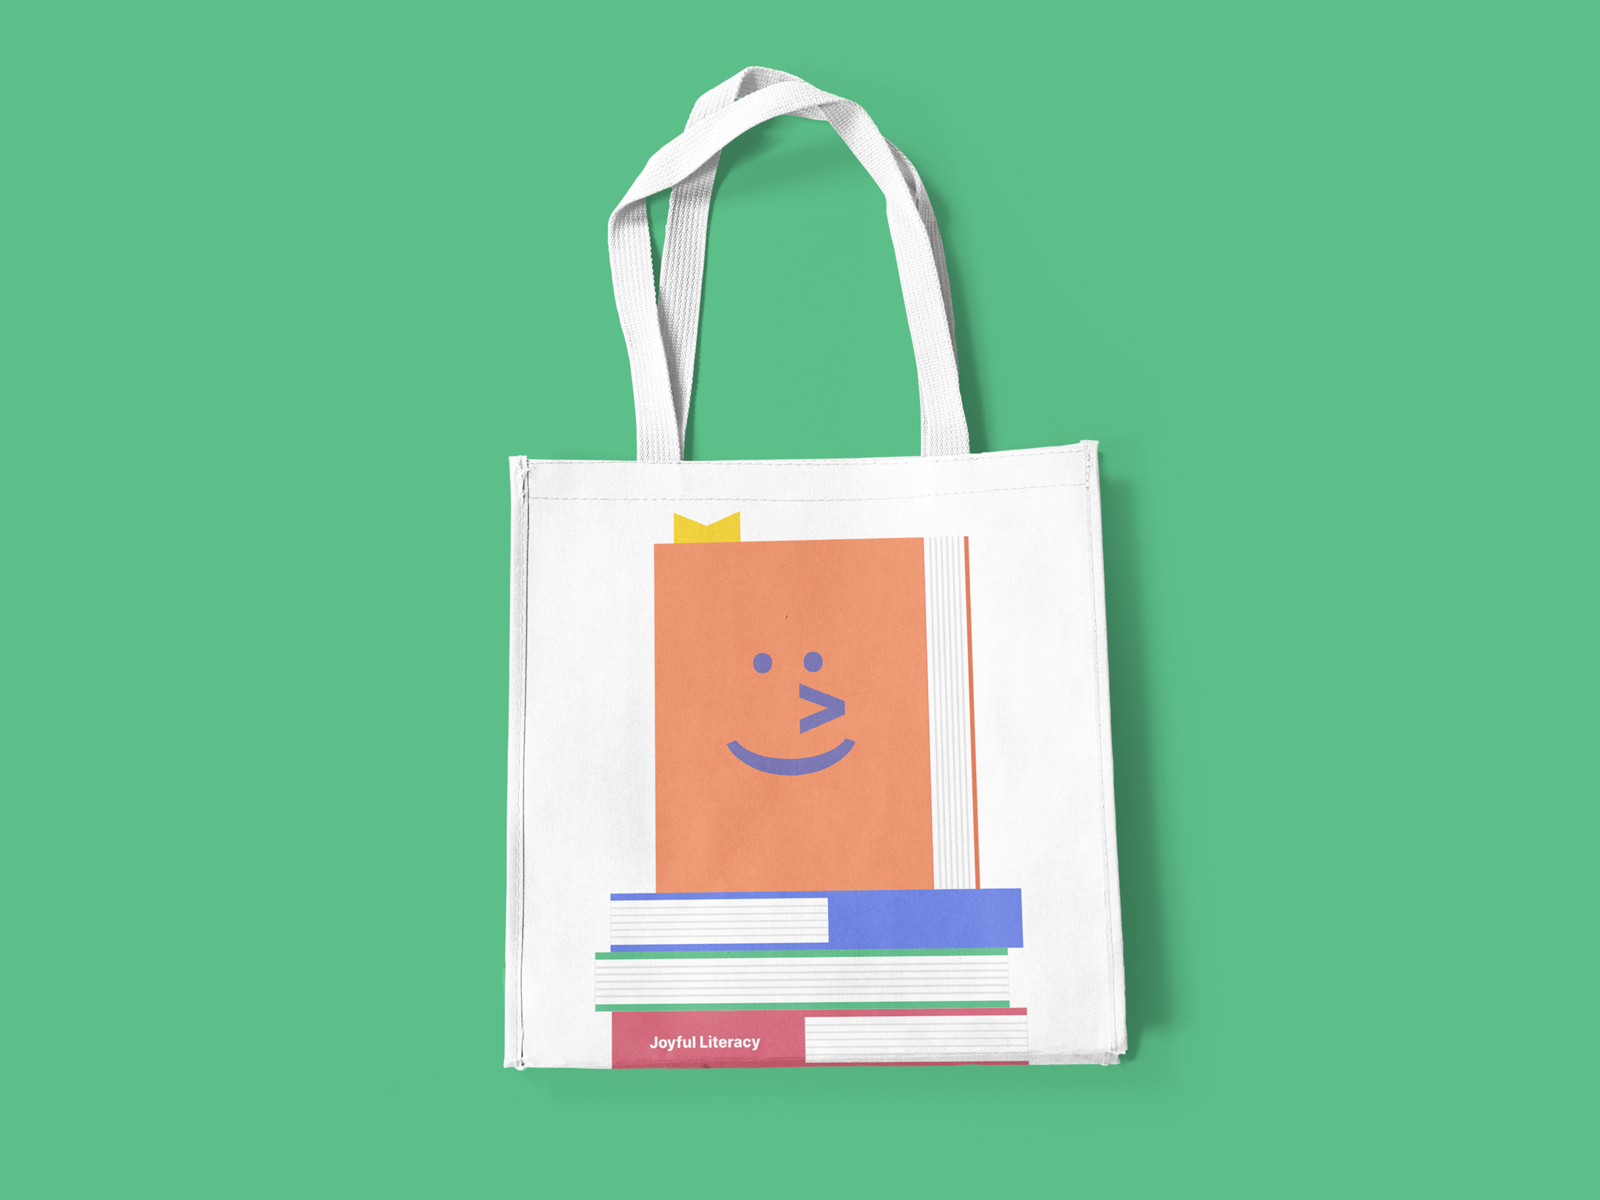 Tote Bag Design for Joyful Literacy by Lucas Bell Graphic Designer in Victoria BC